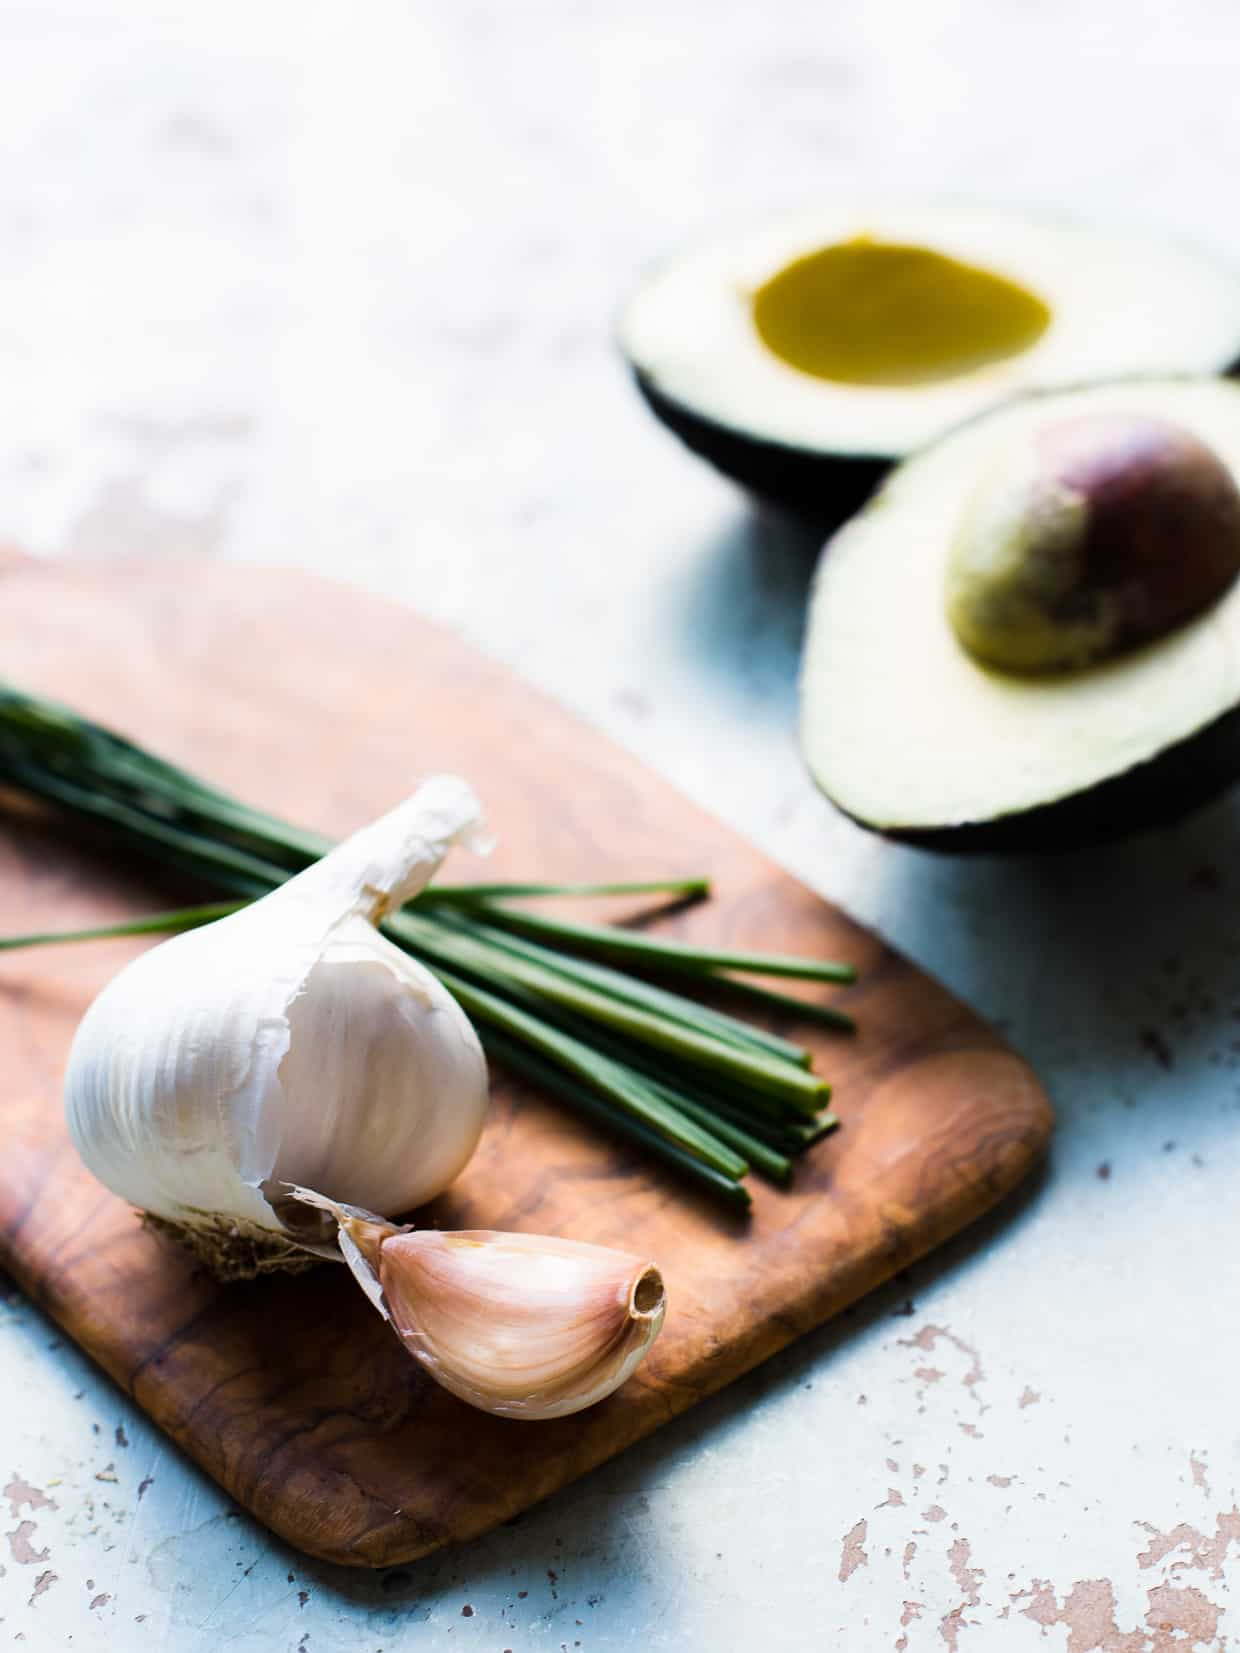 Garlic, herbs, and avocado for Creamy Avocado Green Goddess Salad.